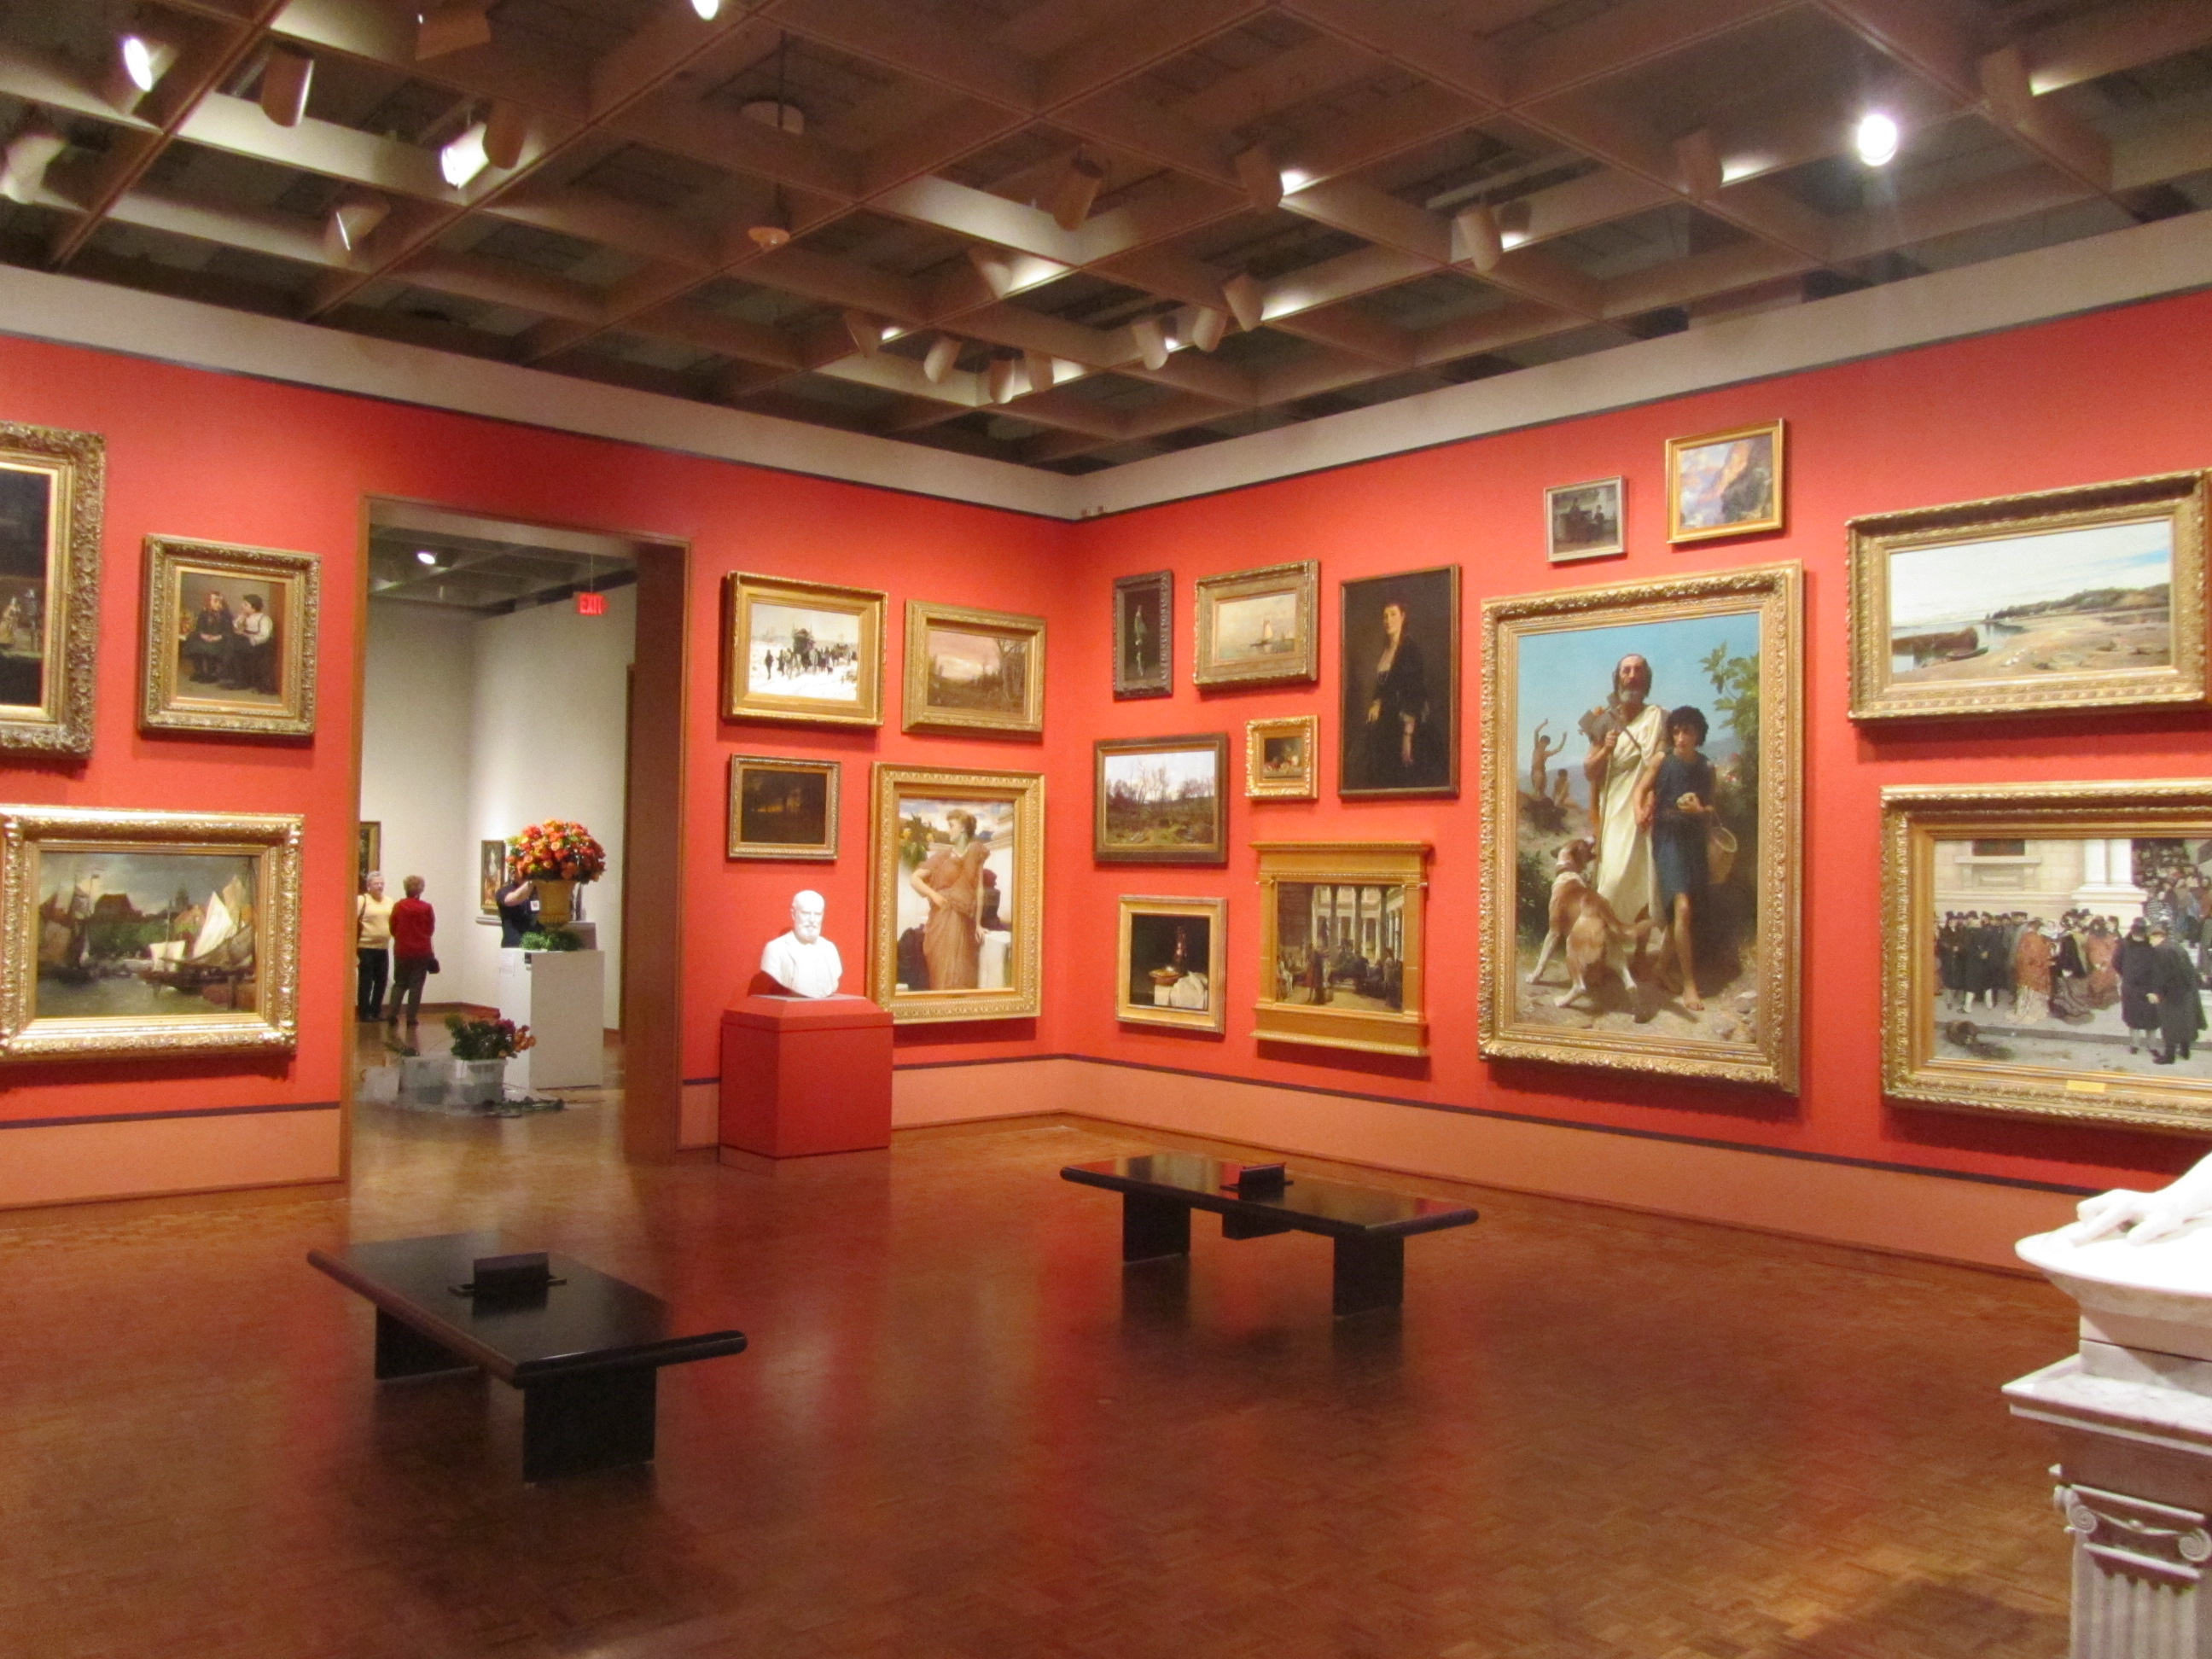 View of Gallery 10. Photo by Chelsea Kelly